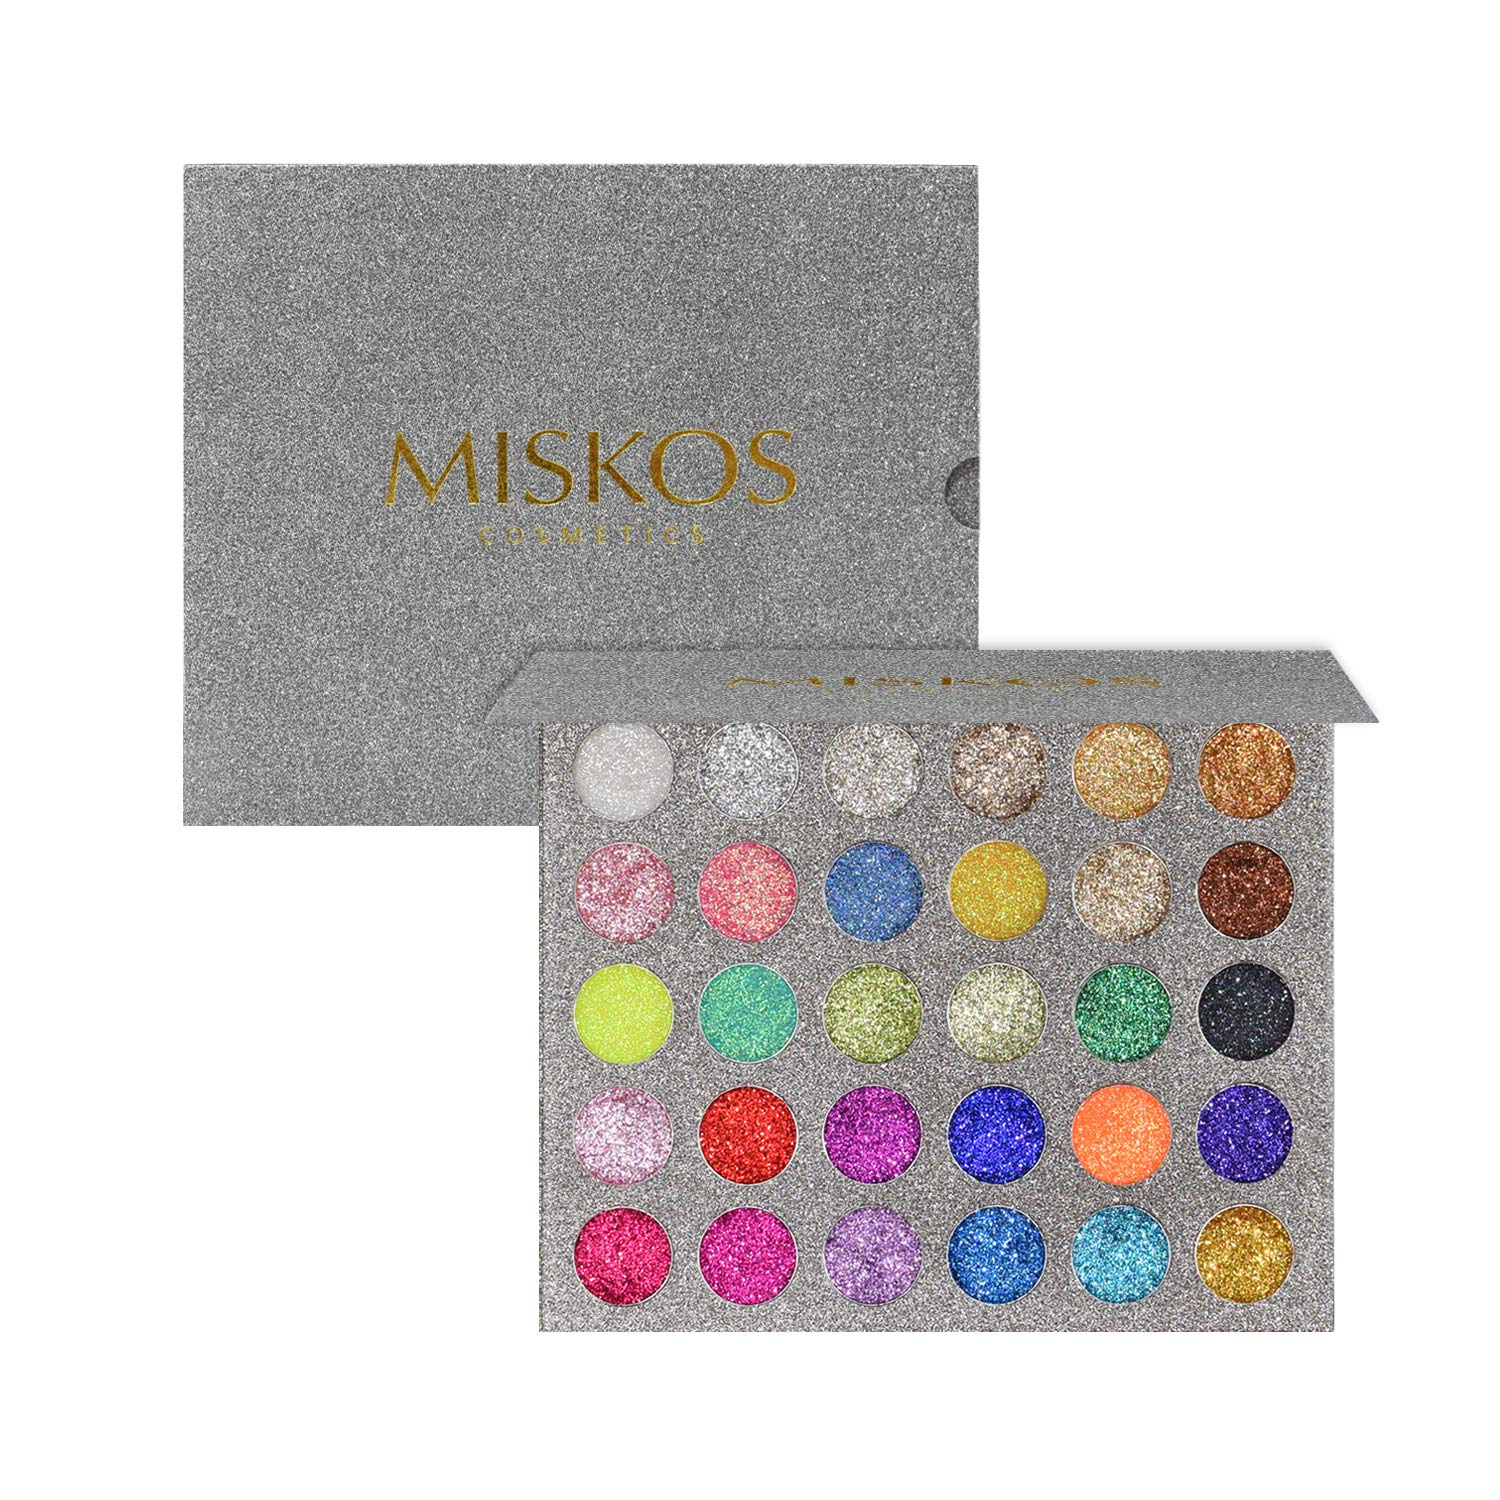 MISKOS Glitter Eyeshadow Pallet 30 Colors Highly Pigmented Mineral Foiled Long-Lasting Shimmer Powder Eye Shadow Palette Waterproof Makeup Kit